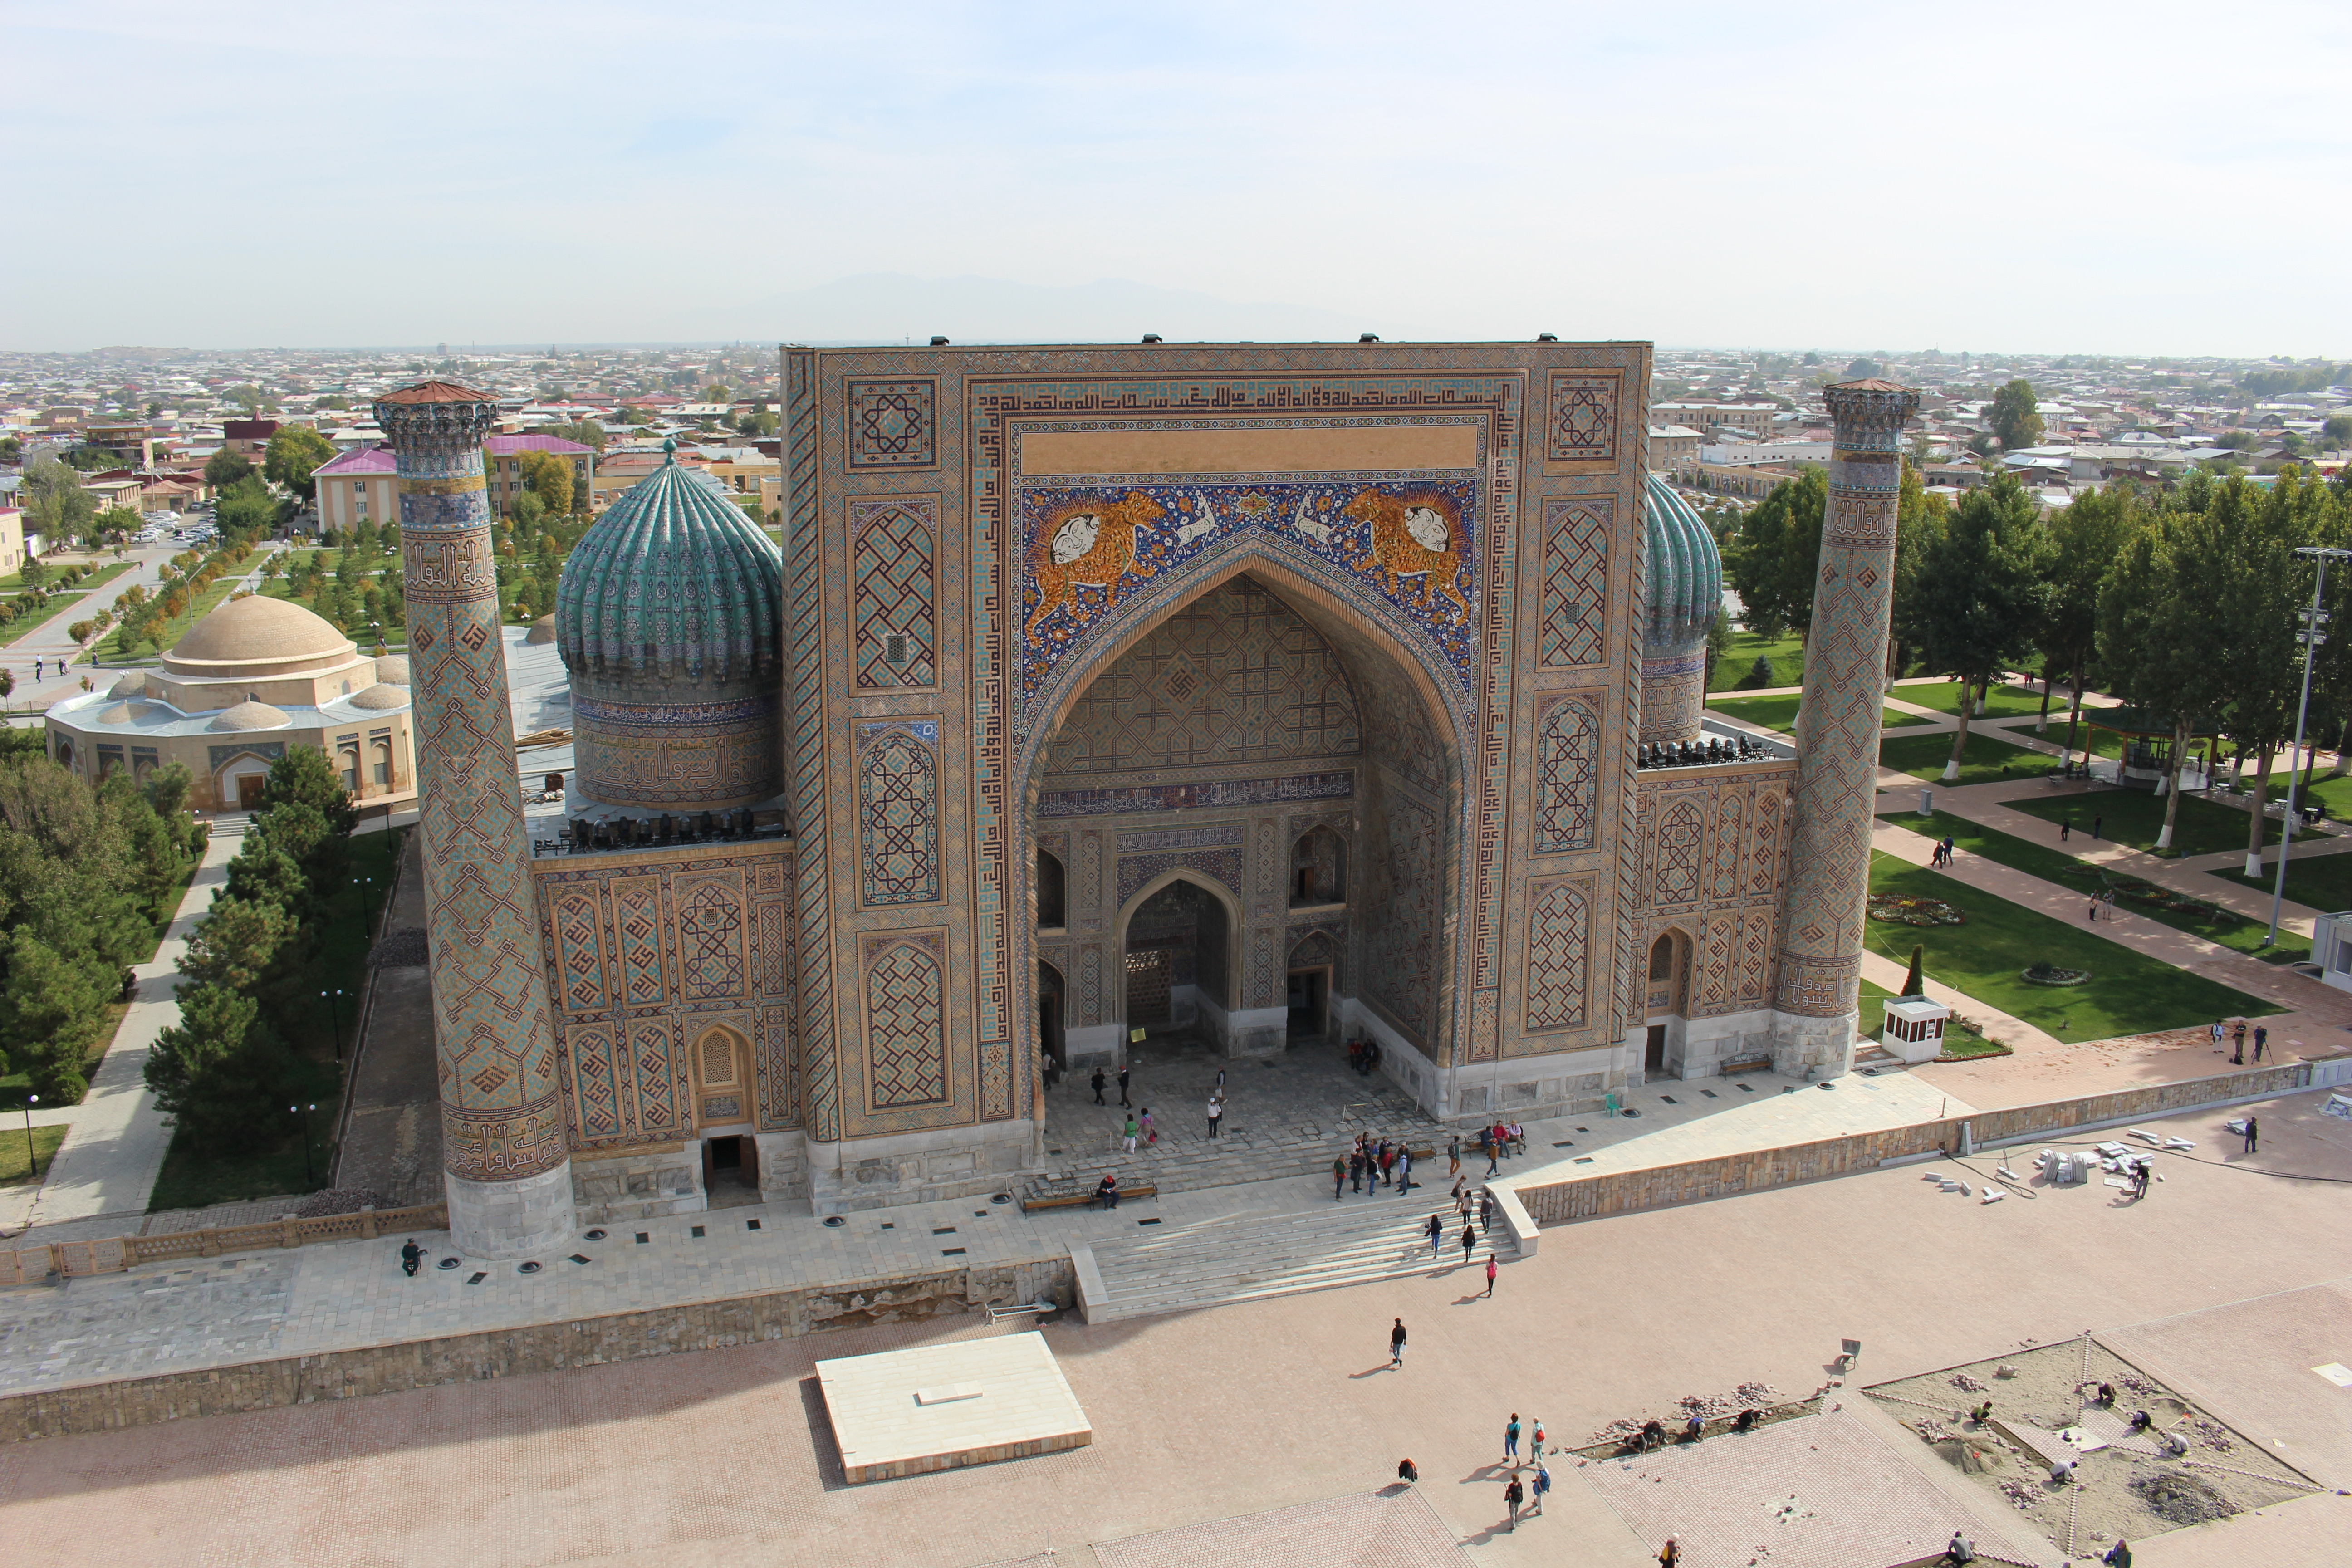 essay on uzbekistan Below is an essay on uzbekistan from anti essays, your source for research papers, essays, and term paper examples uzbekistan is in central asia it is north of turkmenistan and south of kazakhstan.